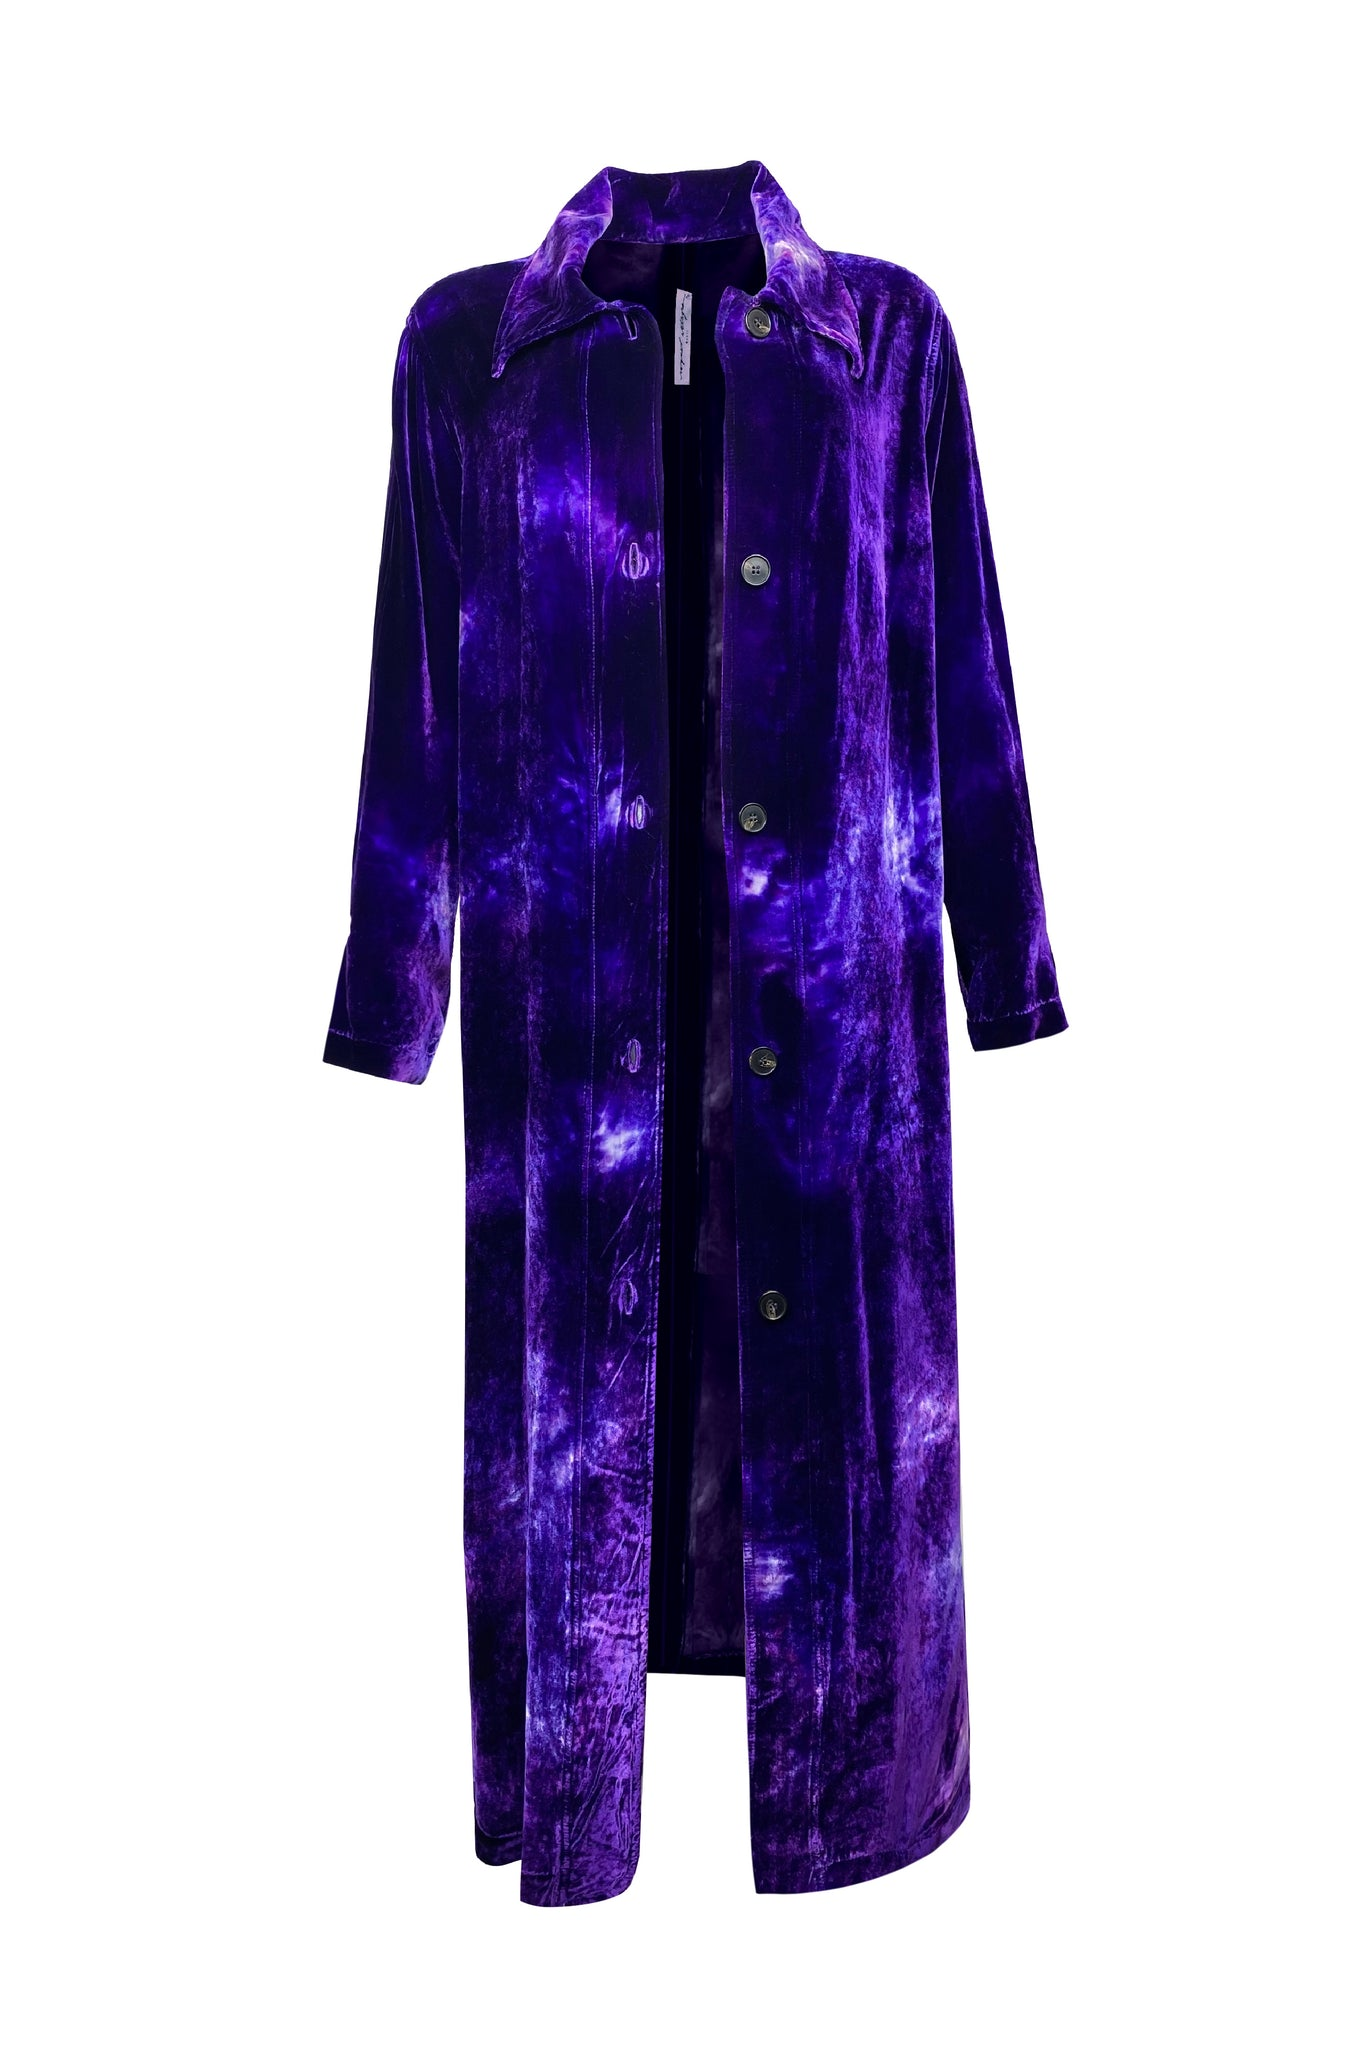 Raquel Allegra House Party Trench - Purple Cloud